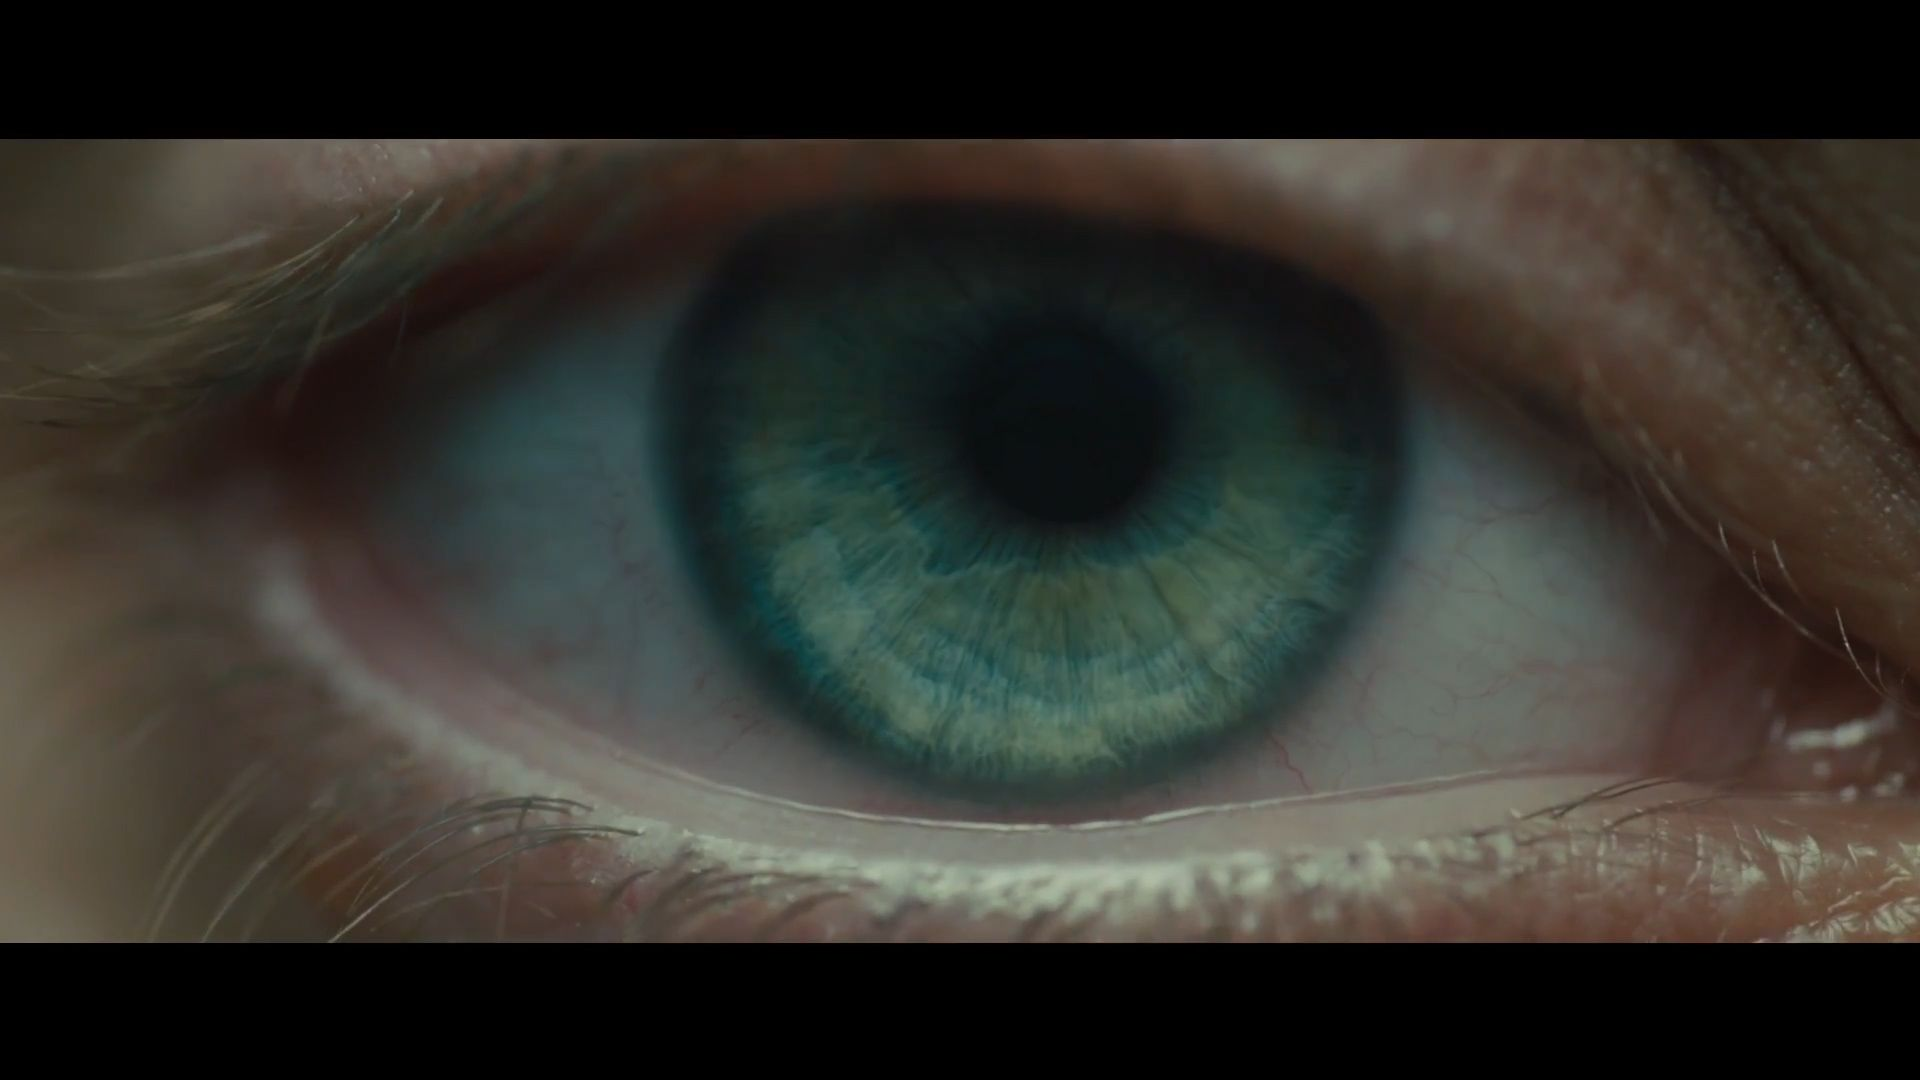 Once Again Blade Runner With The Eye Human Or Replicant Blade Runner Blade Runner 2049 Blade